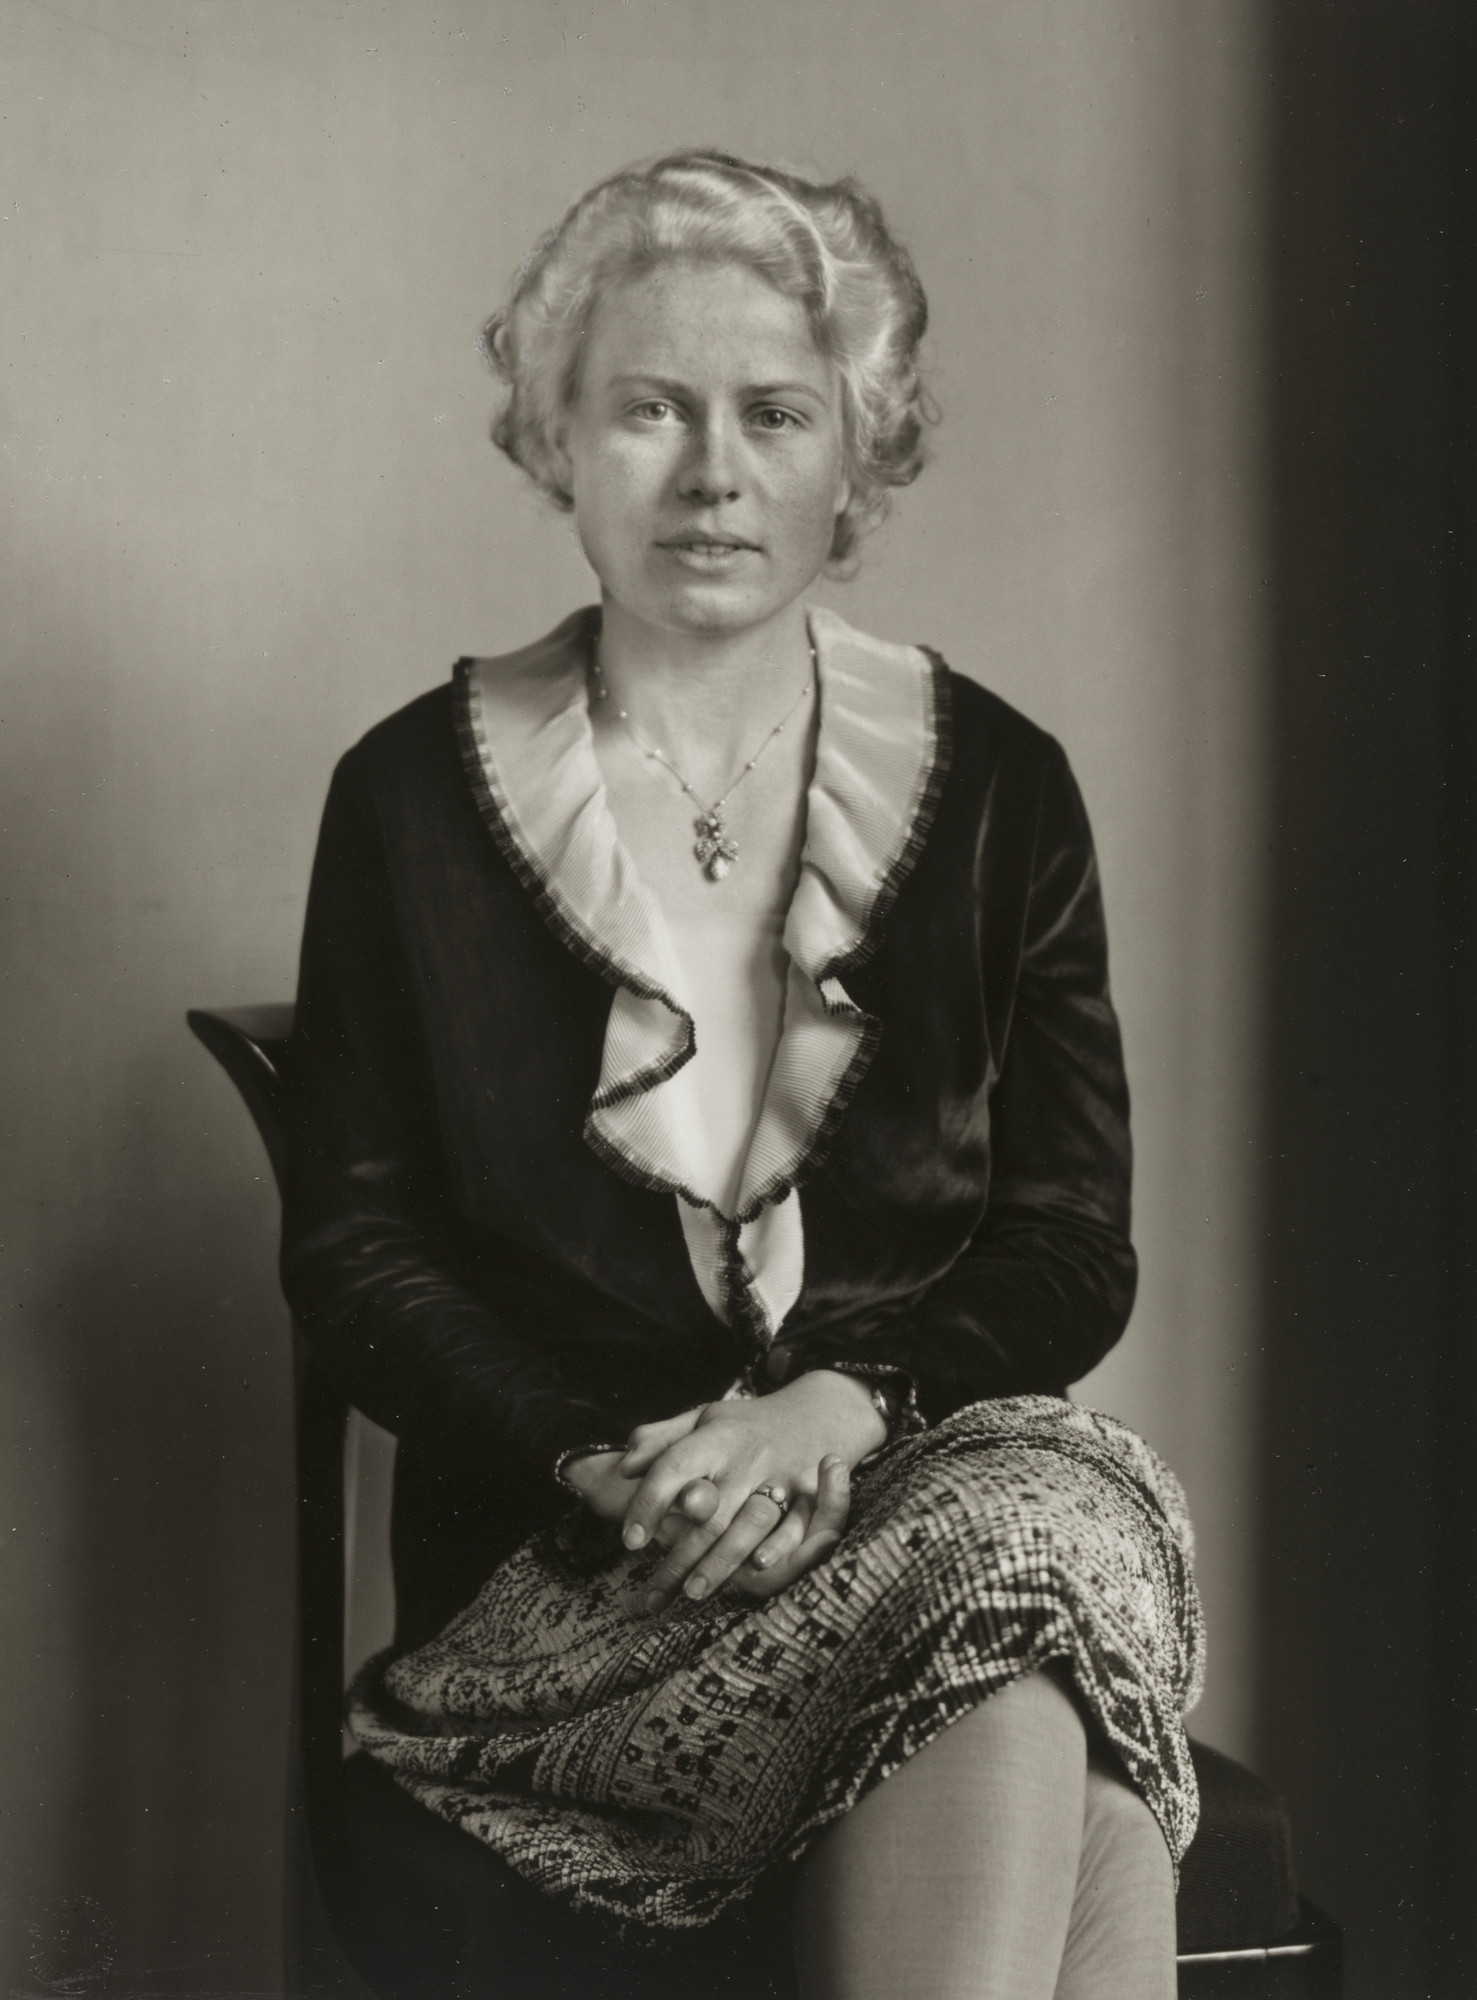 August Sander. Society Lady. c. 1930